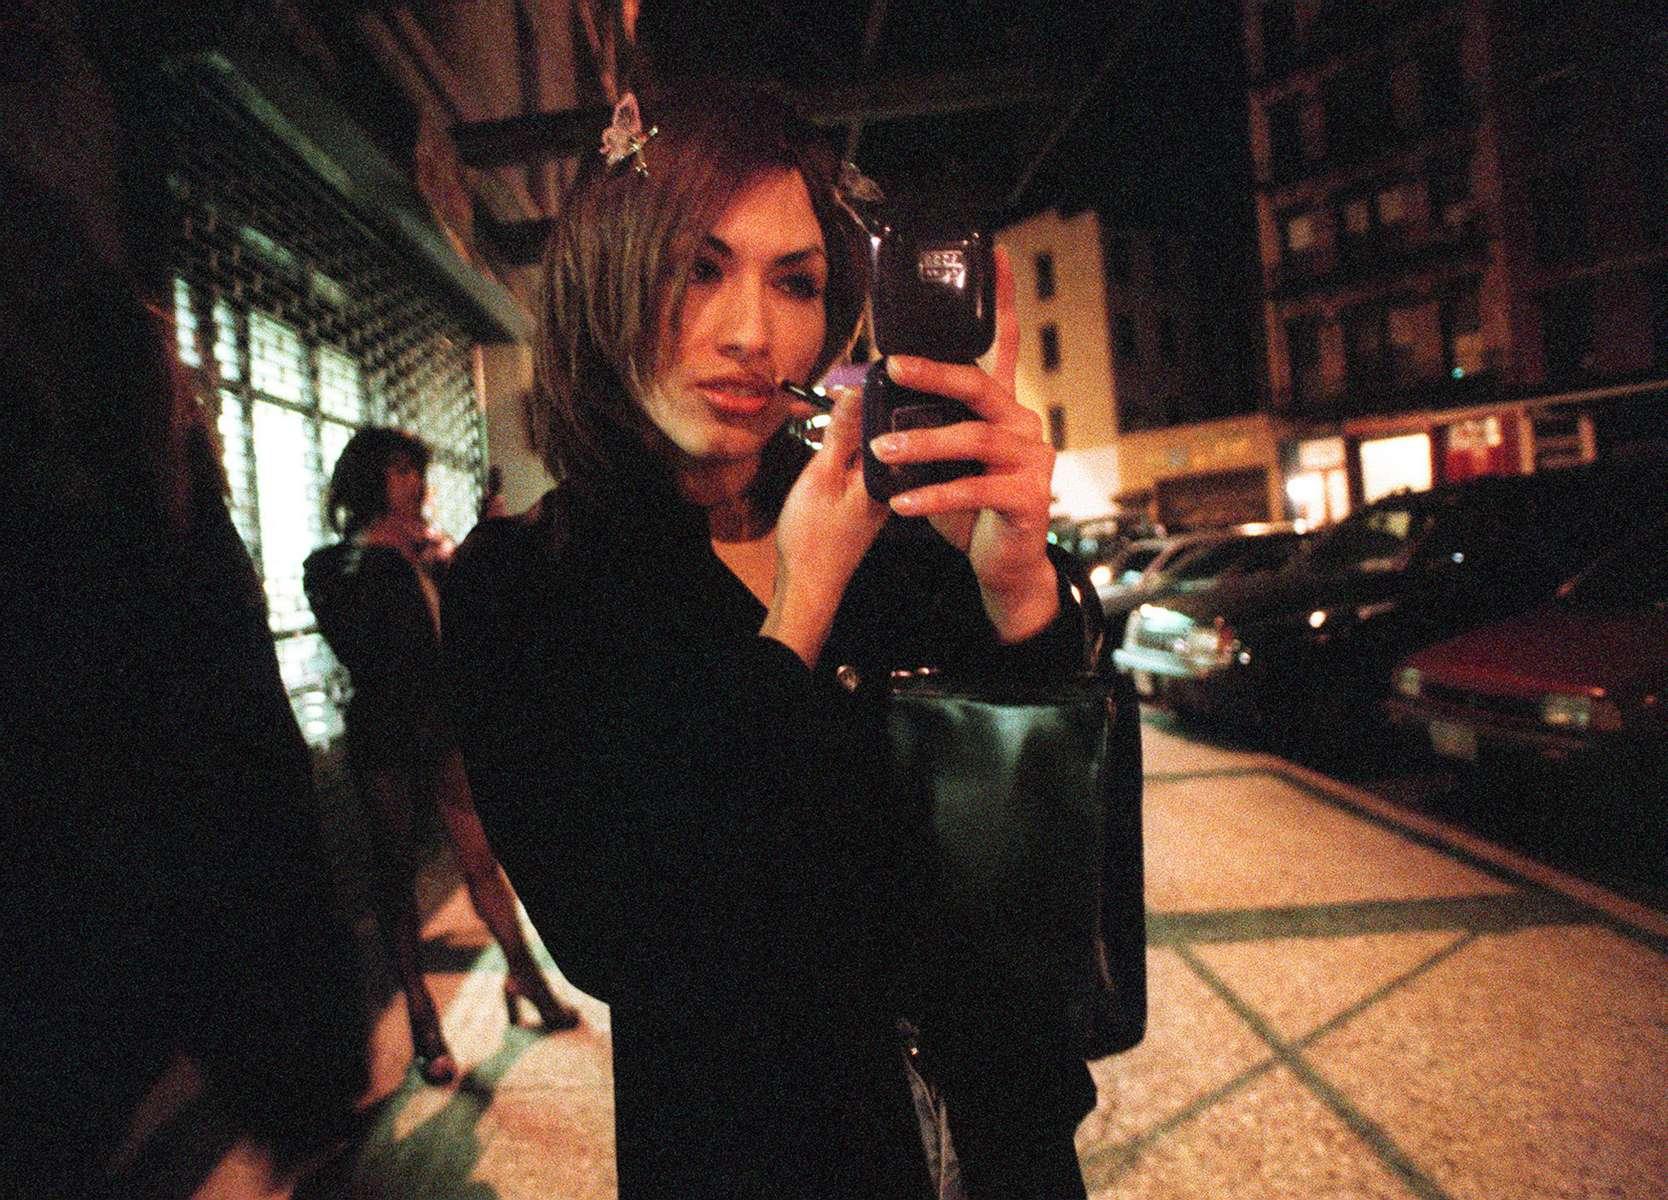 Christian Sosa reapplies her make-up on Little W. 12th Street in New York Sunday morning, April 25, 1999, while other sex workers wait for clients in the background.